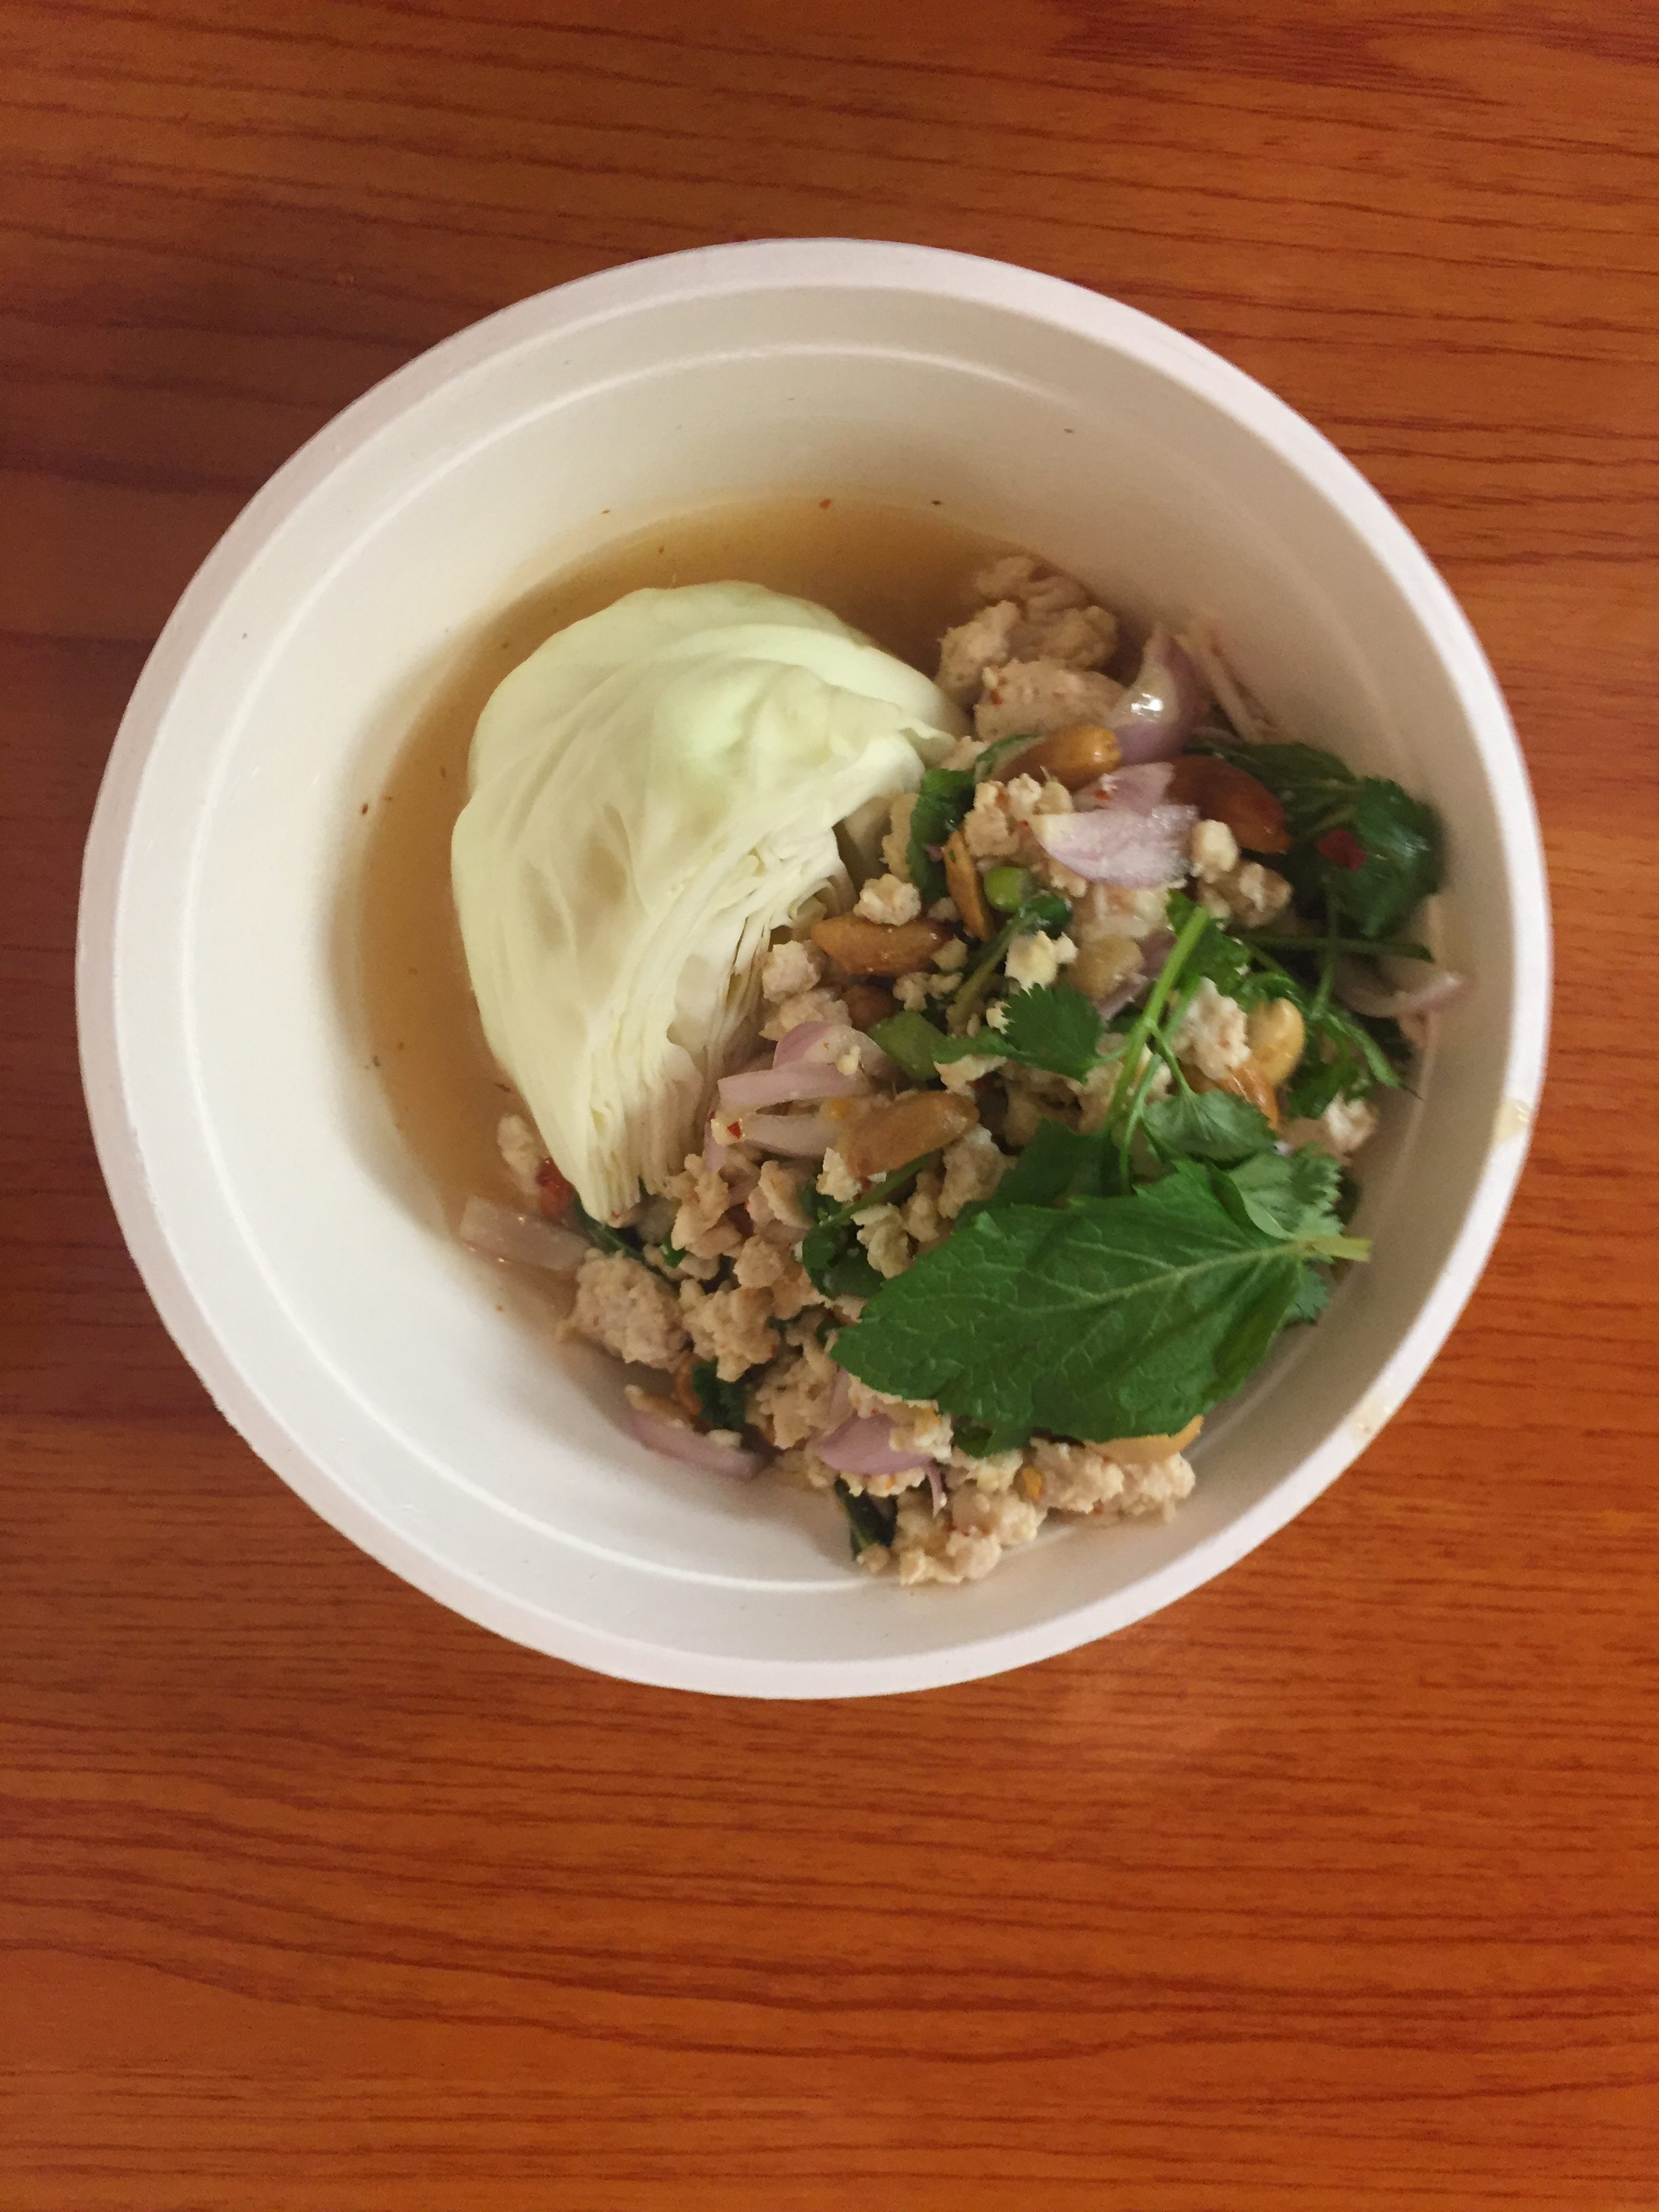 Yum Yai Brings Thai Takeout to Downtown | What to Eat in Birmingham